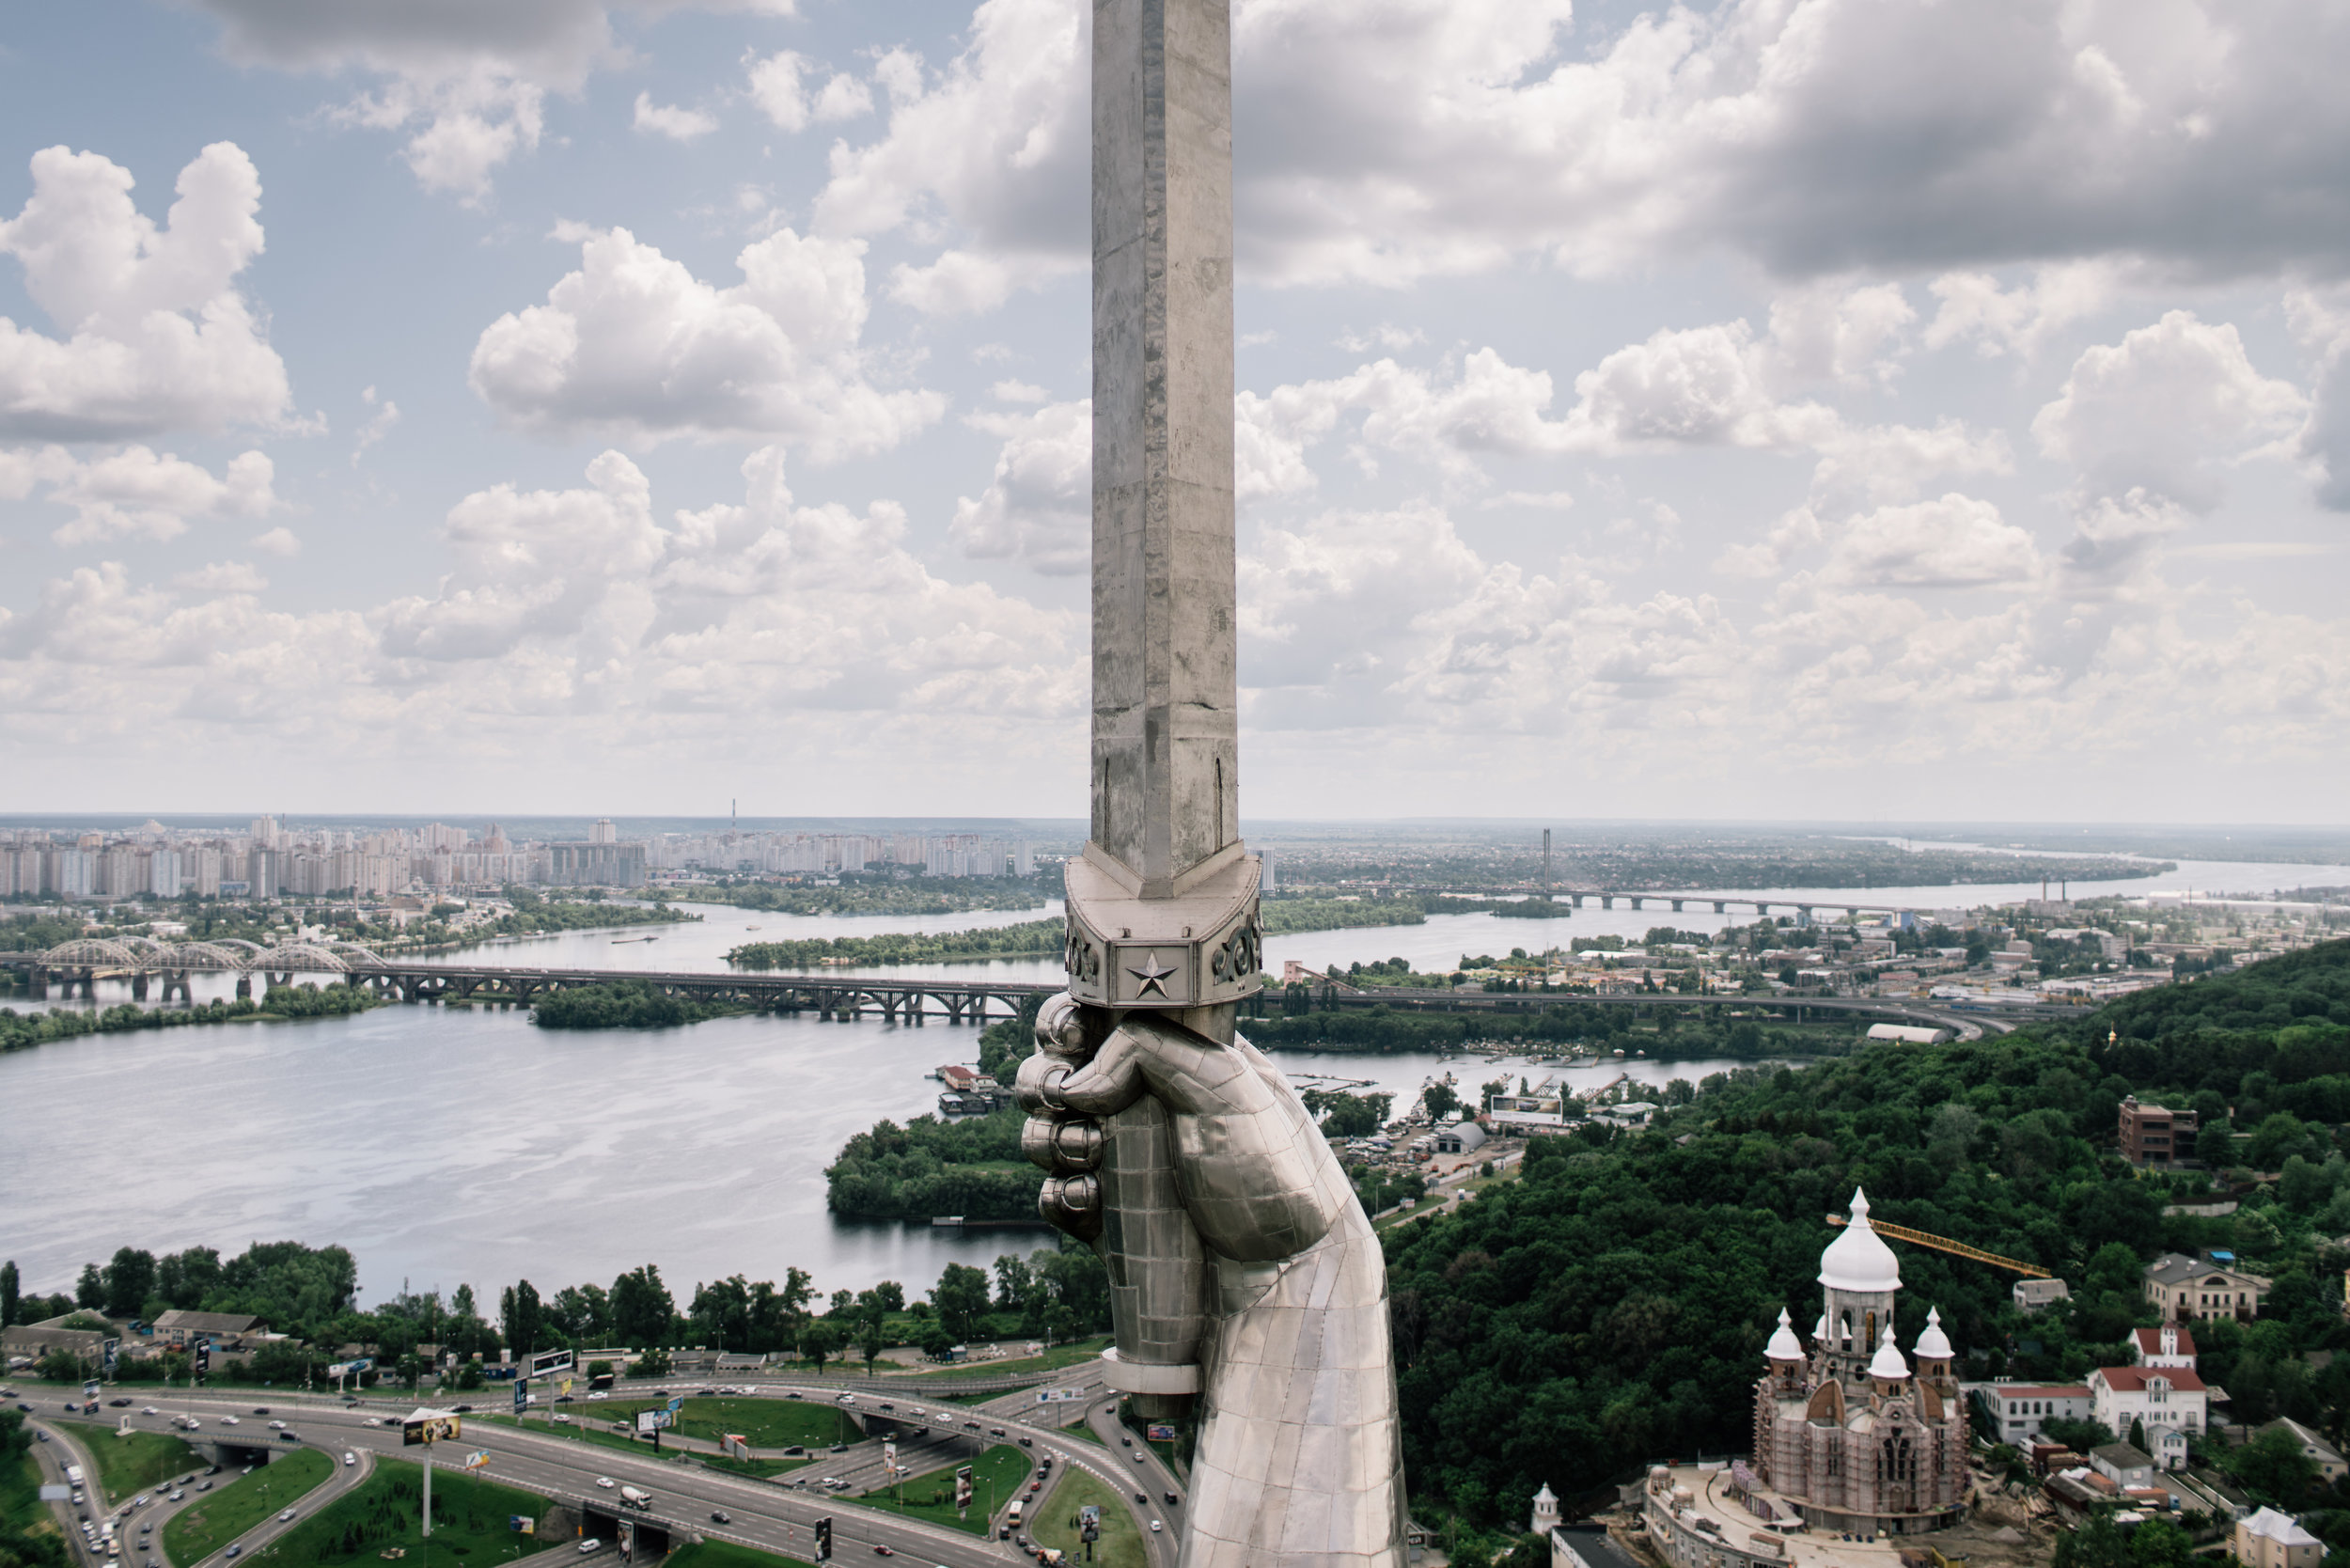 Will you dare climbing to the top of Rodina Mat for one of the most epic view on Kyiv ever?